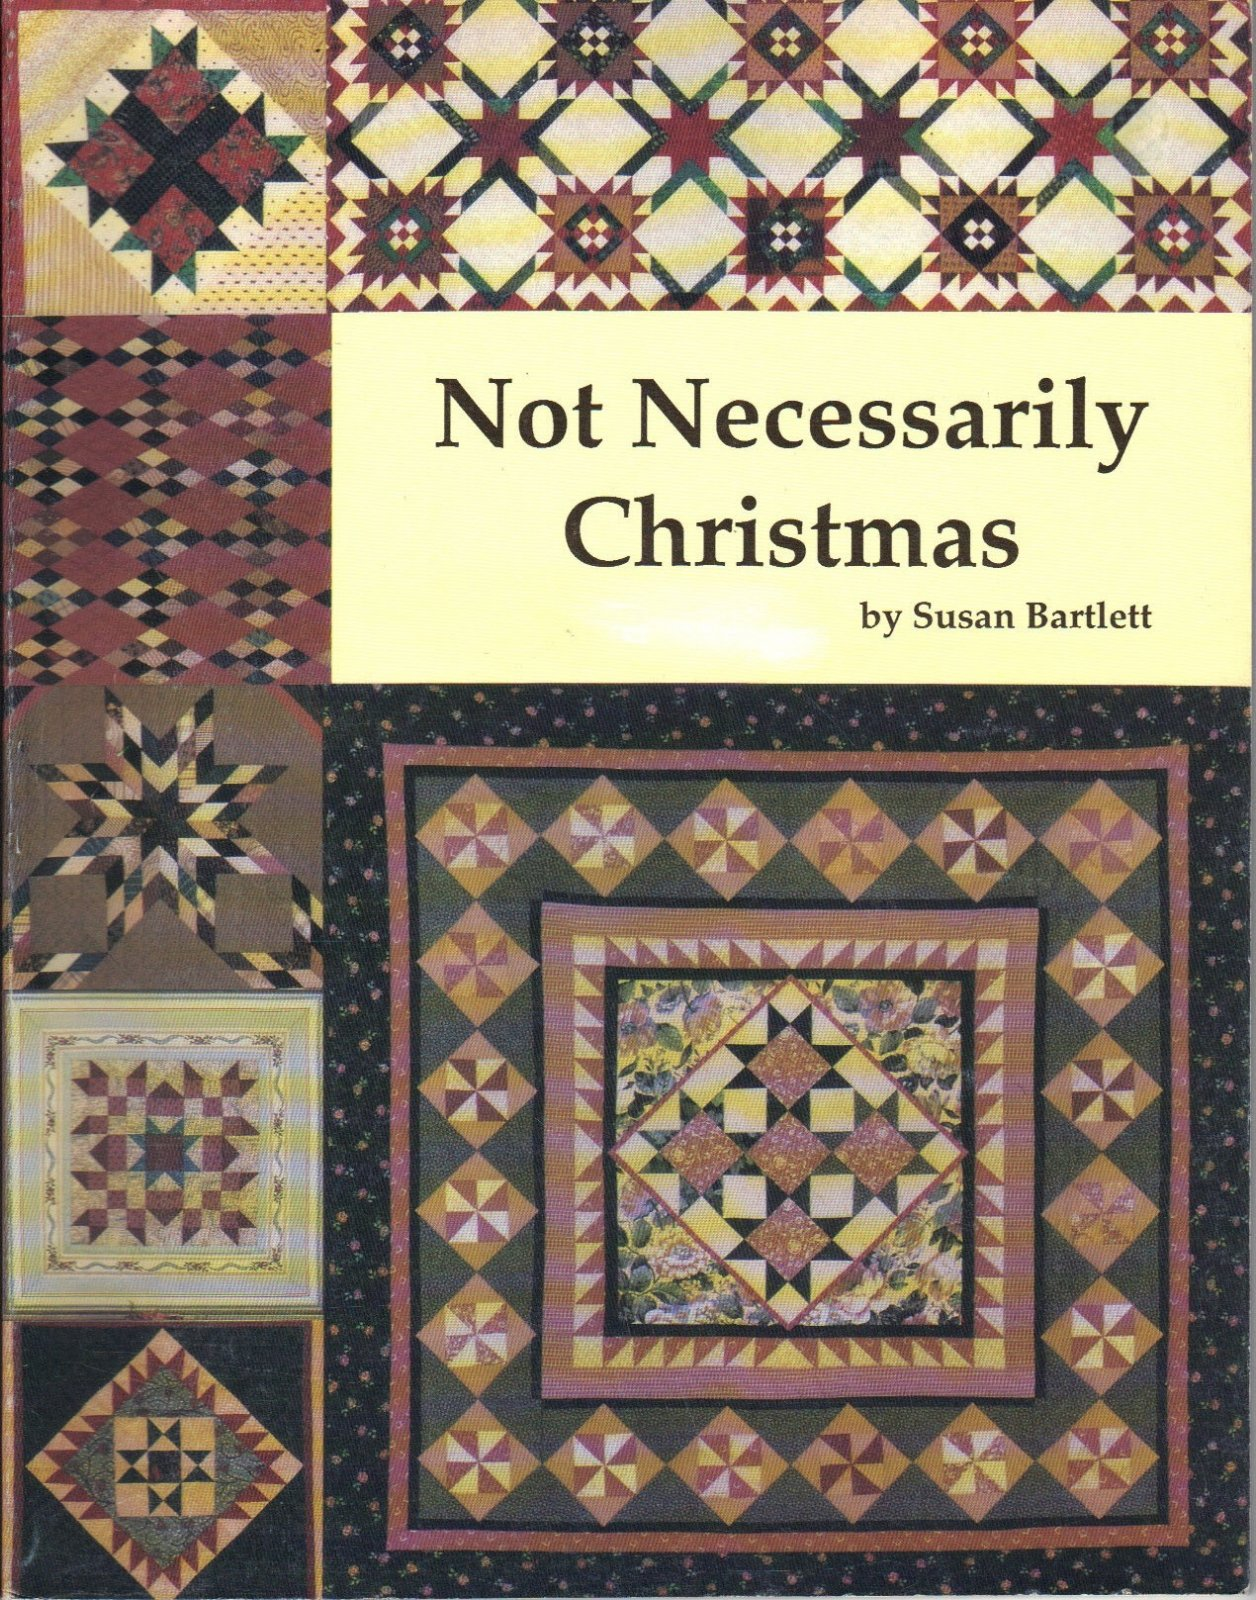 Not Necessarily Christmas